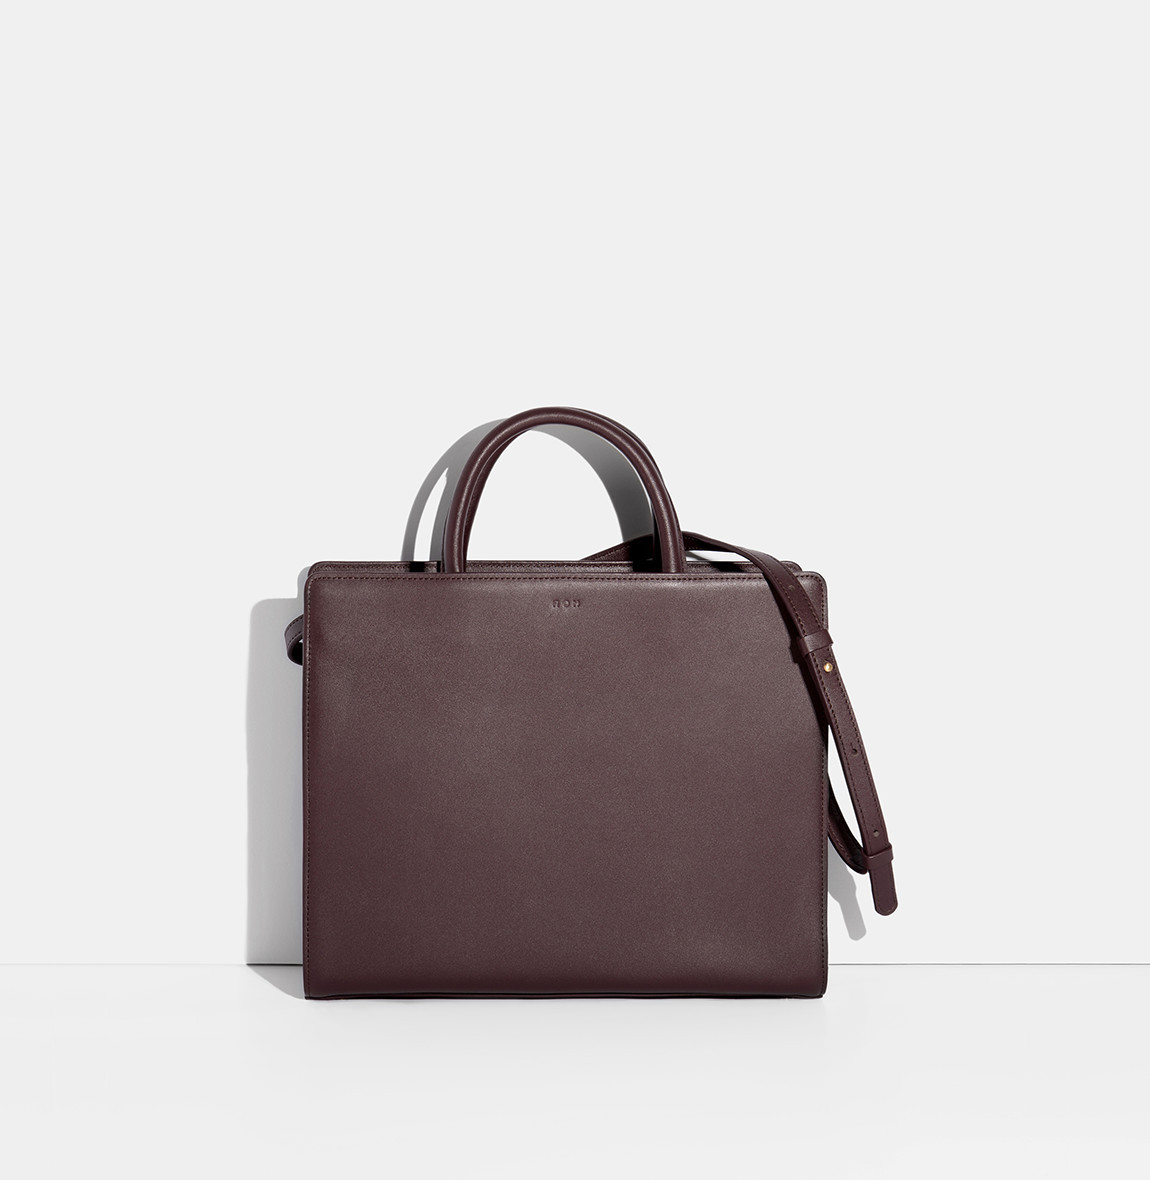 Square Tote Bag Burgundy